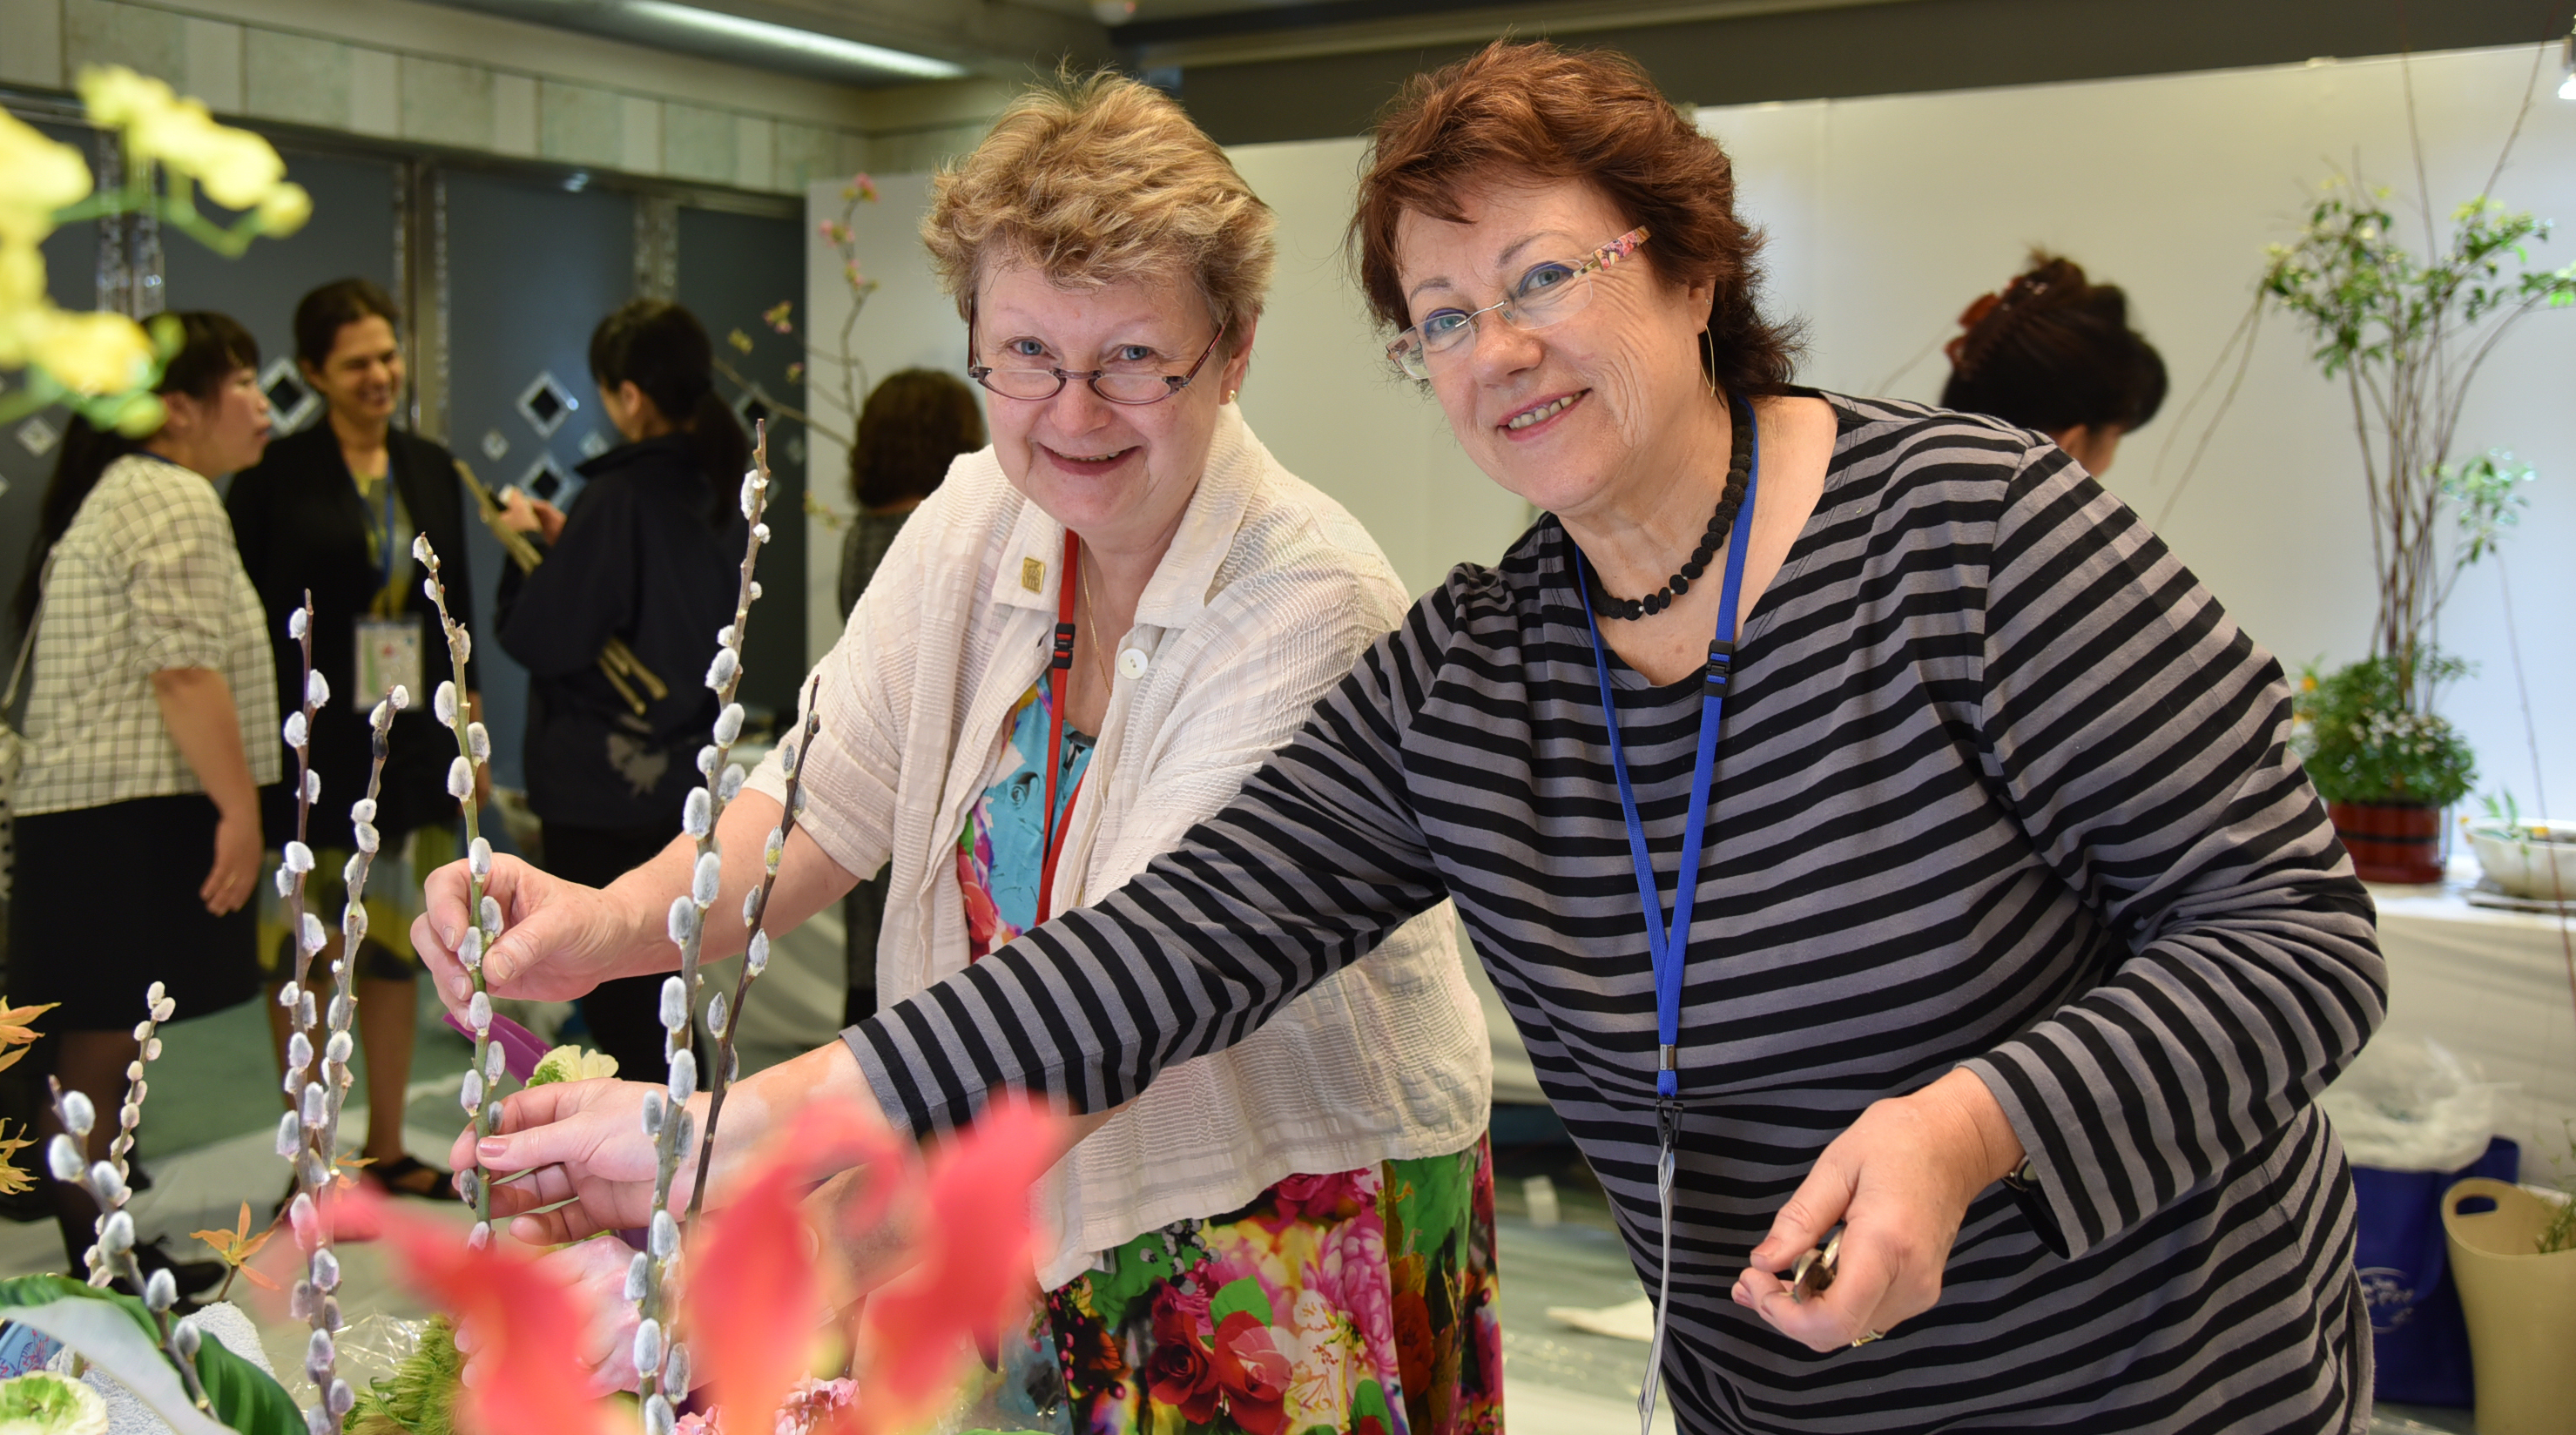 Organizers prepare for the 11th Ikebana International World Convention in Okinawa which took place at the Okinawa Convention Center on April 12 to 15. |   IKEBANA INTERNATIONAL